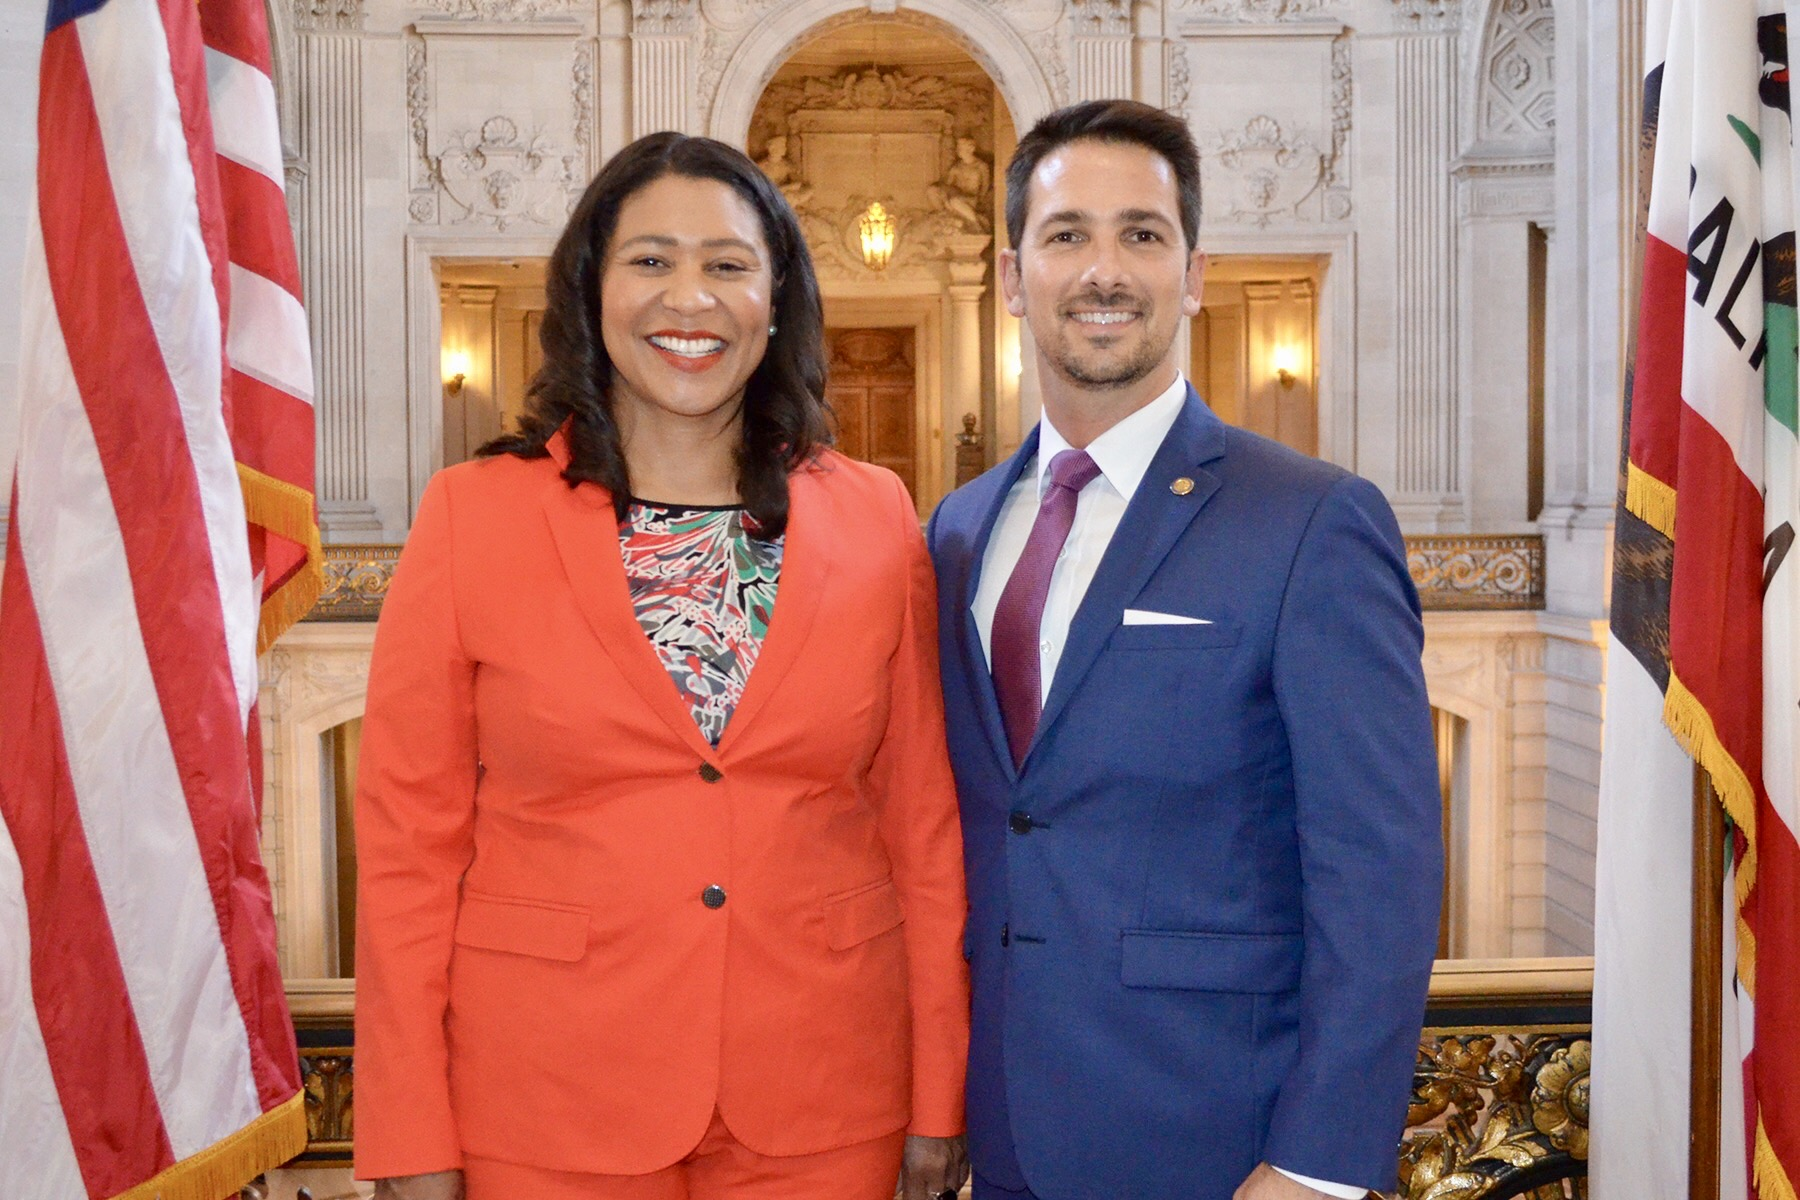 After getting sworn in by Mayor London Breed